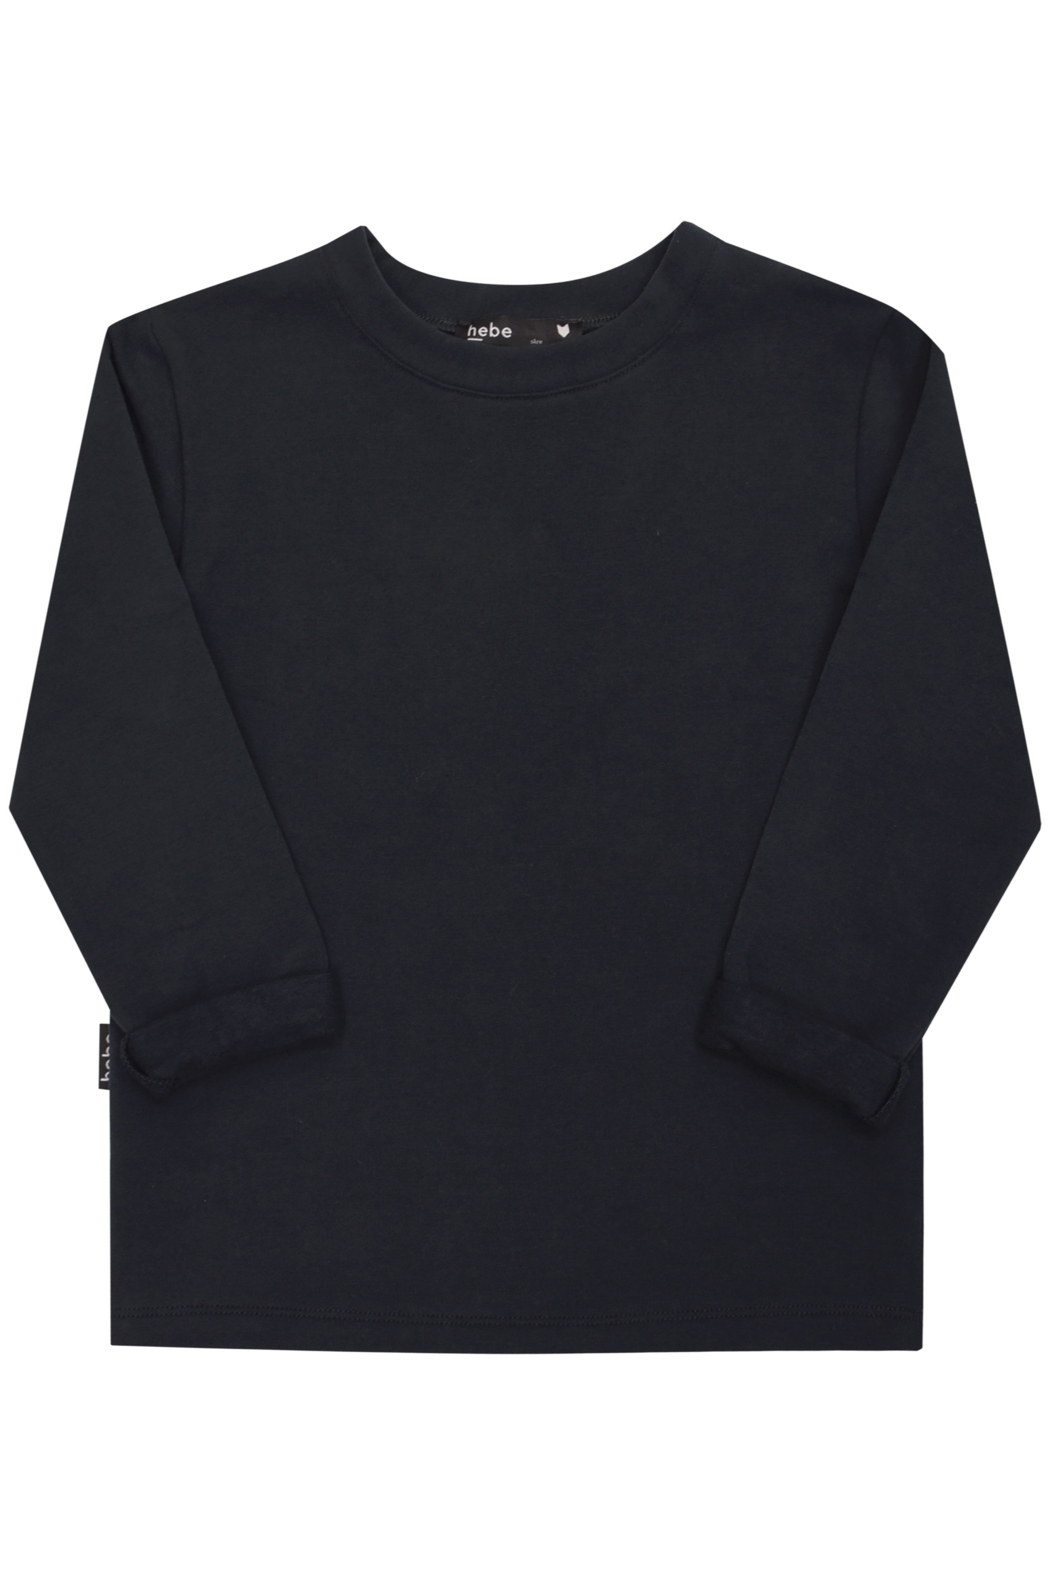 Hebe Organic Cotton Warm Unisex Sweater - Main Image